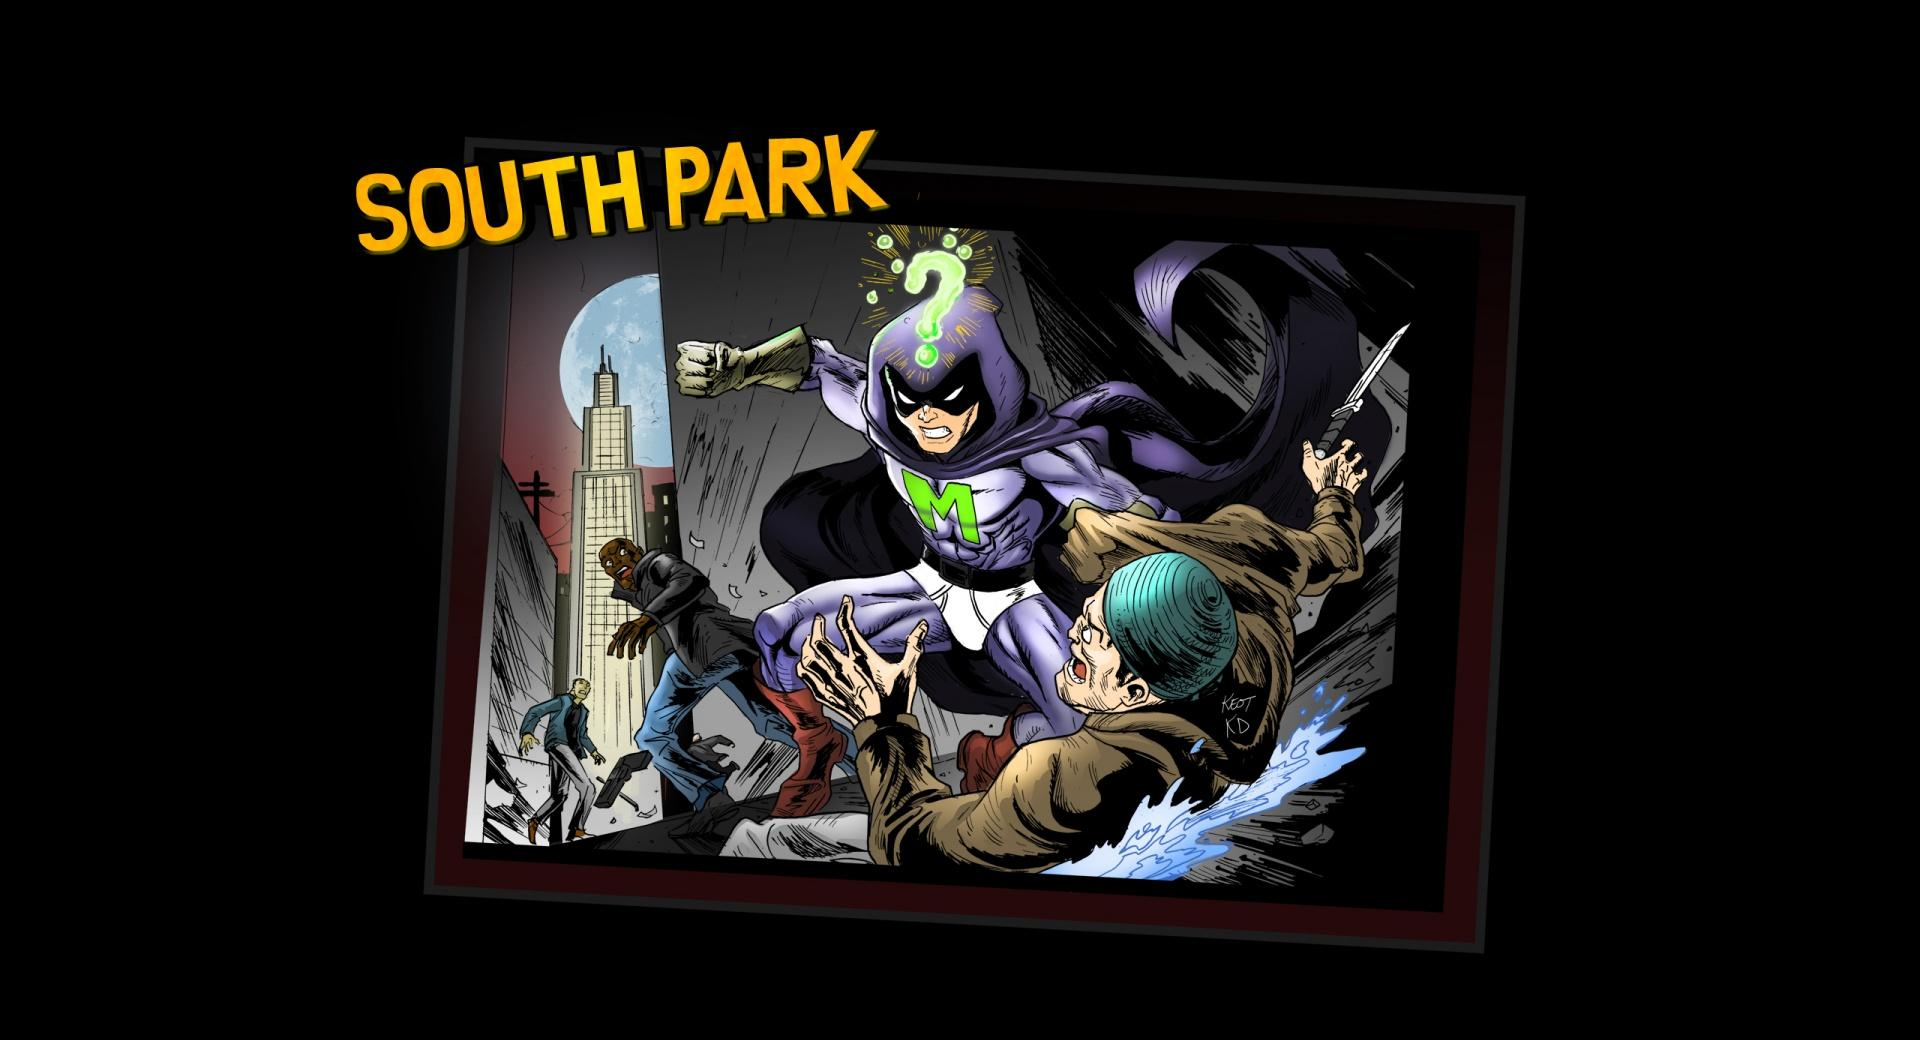 South Park - Mysterion wallpapers HD quality